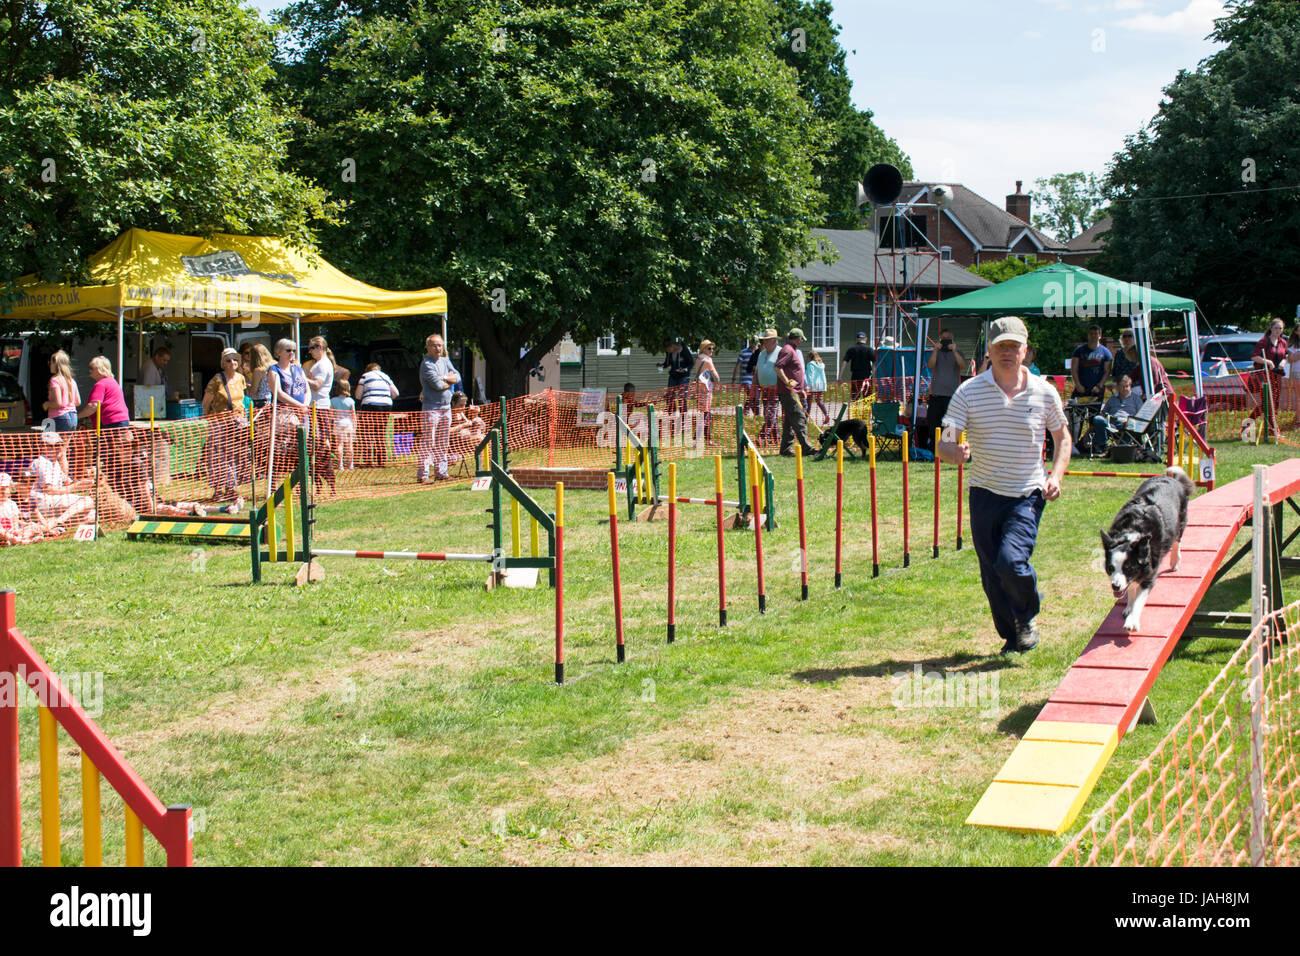 Ashley Green - Dog Agility Course - Chesham - Stock Image